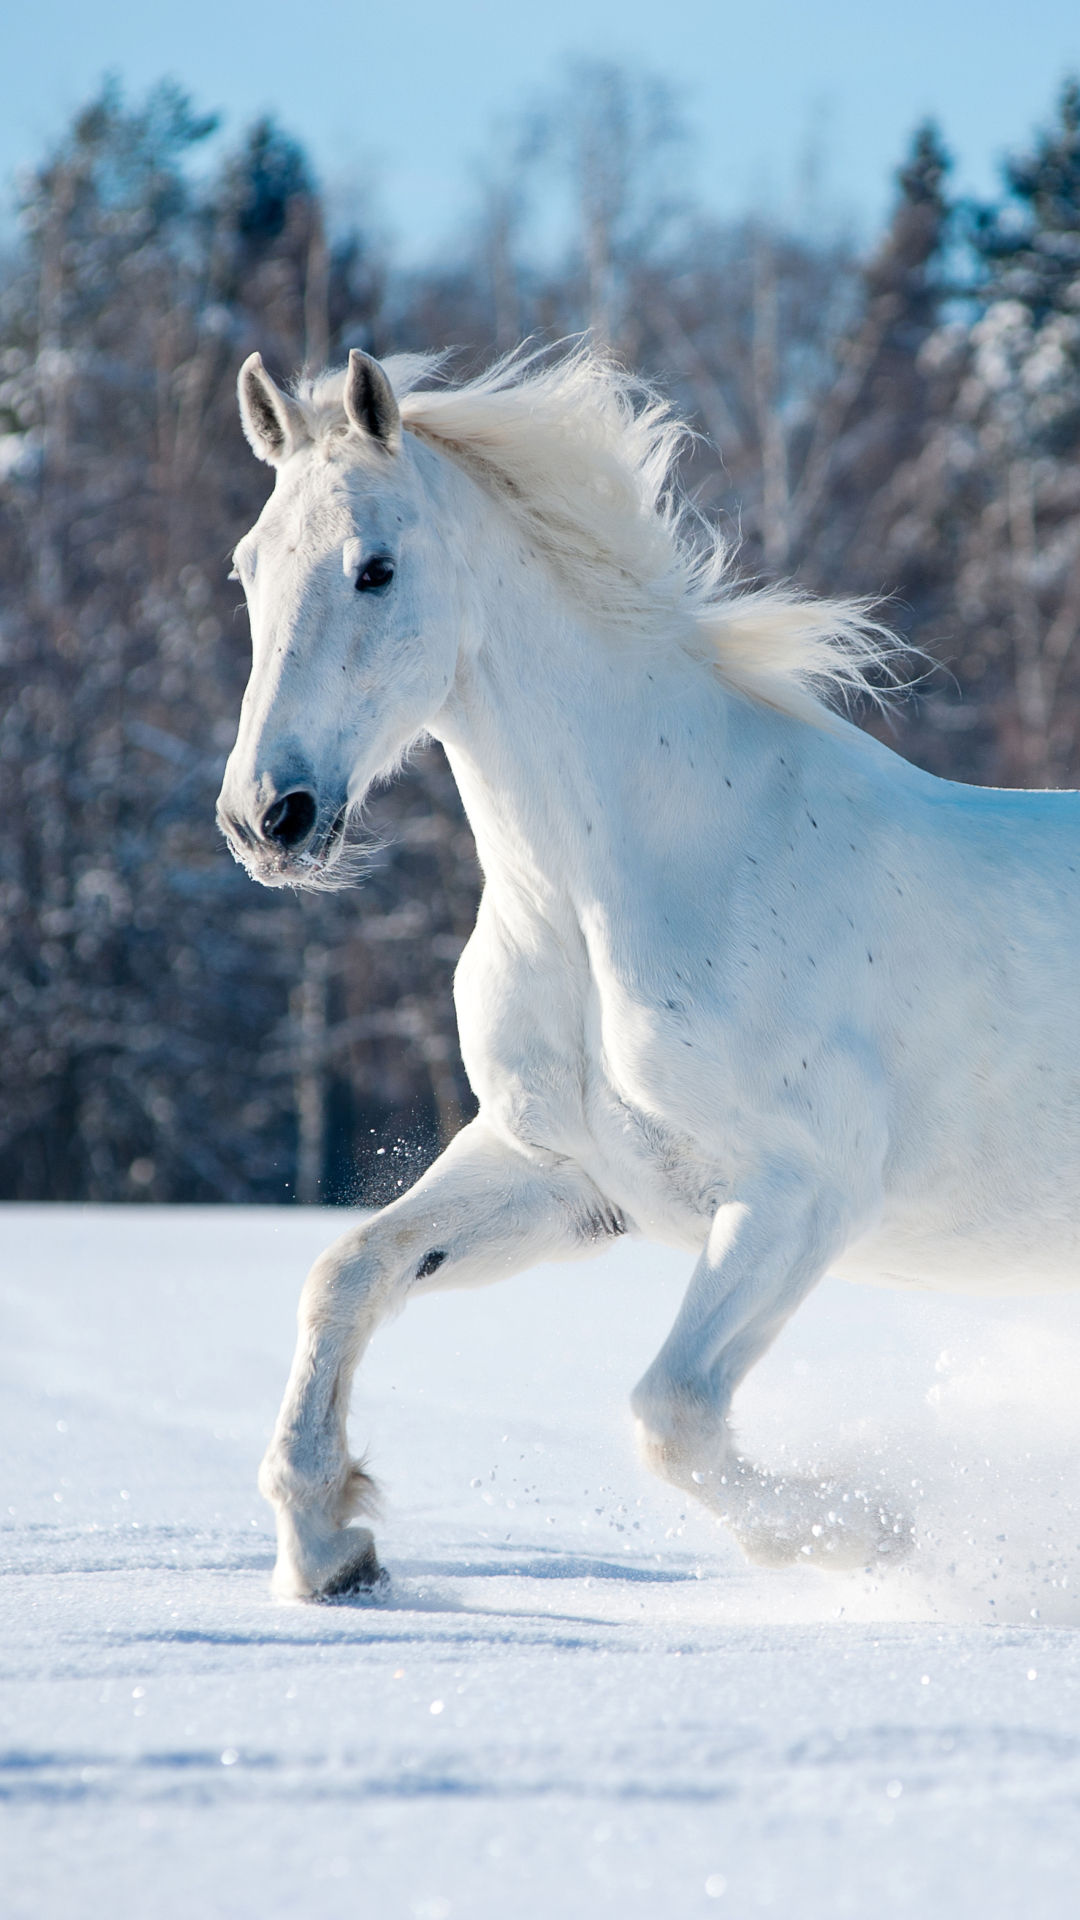 A White Horse Running Through The Snow White Horse Wallpaper For Mobile 1893716 Hd Wallpaper Backgrounds Download